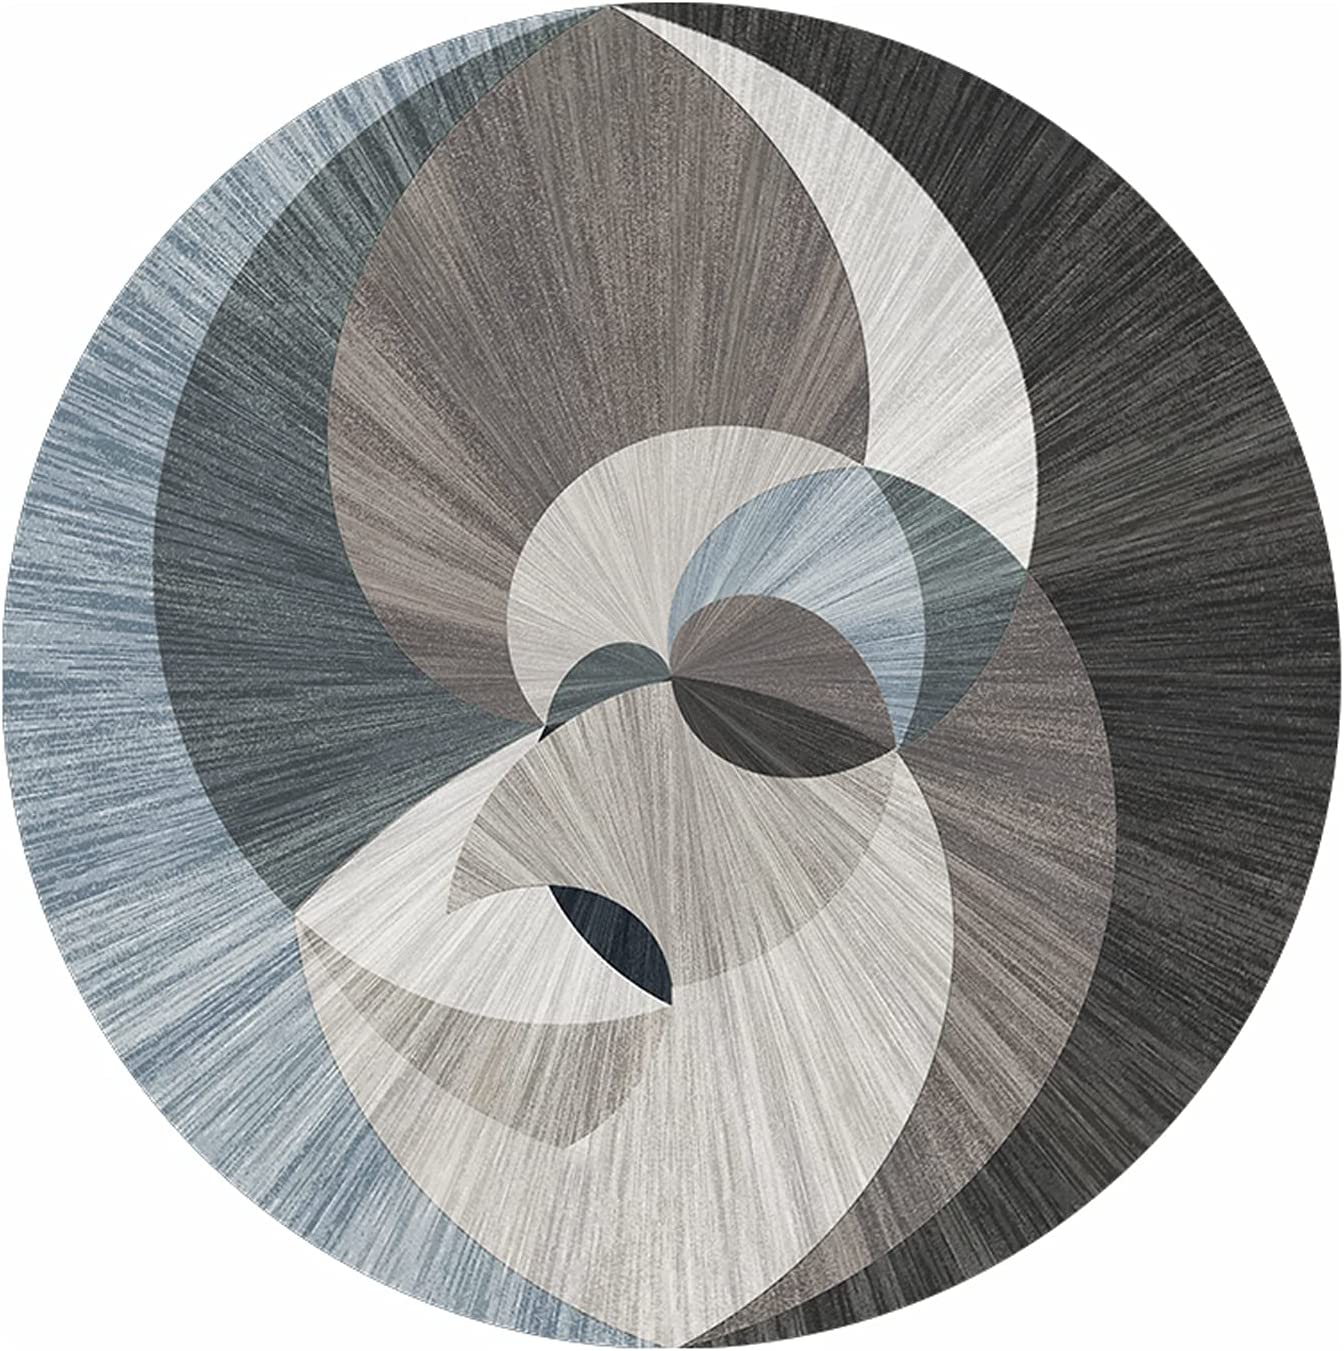 CMX-BOX Nordic Round specialty 2021 autumn and winter new shop Area Rugs Carpet for Circular Large Bedroom